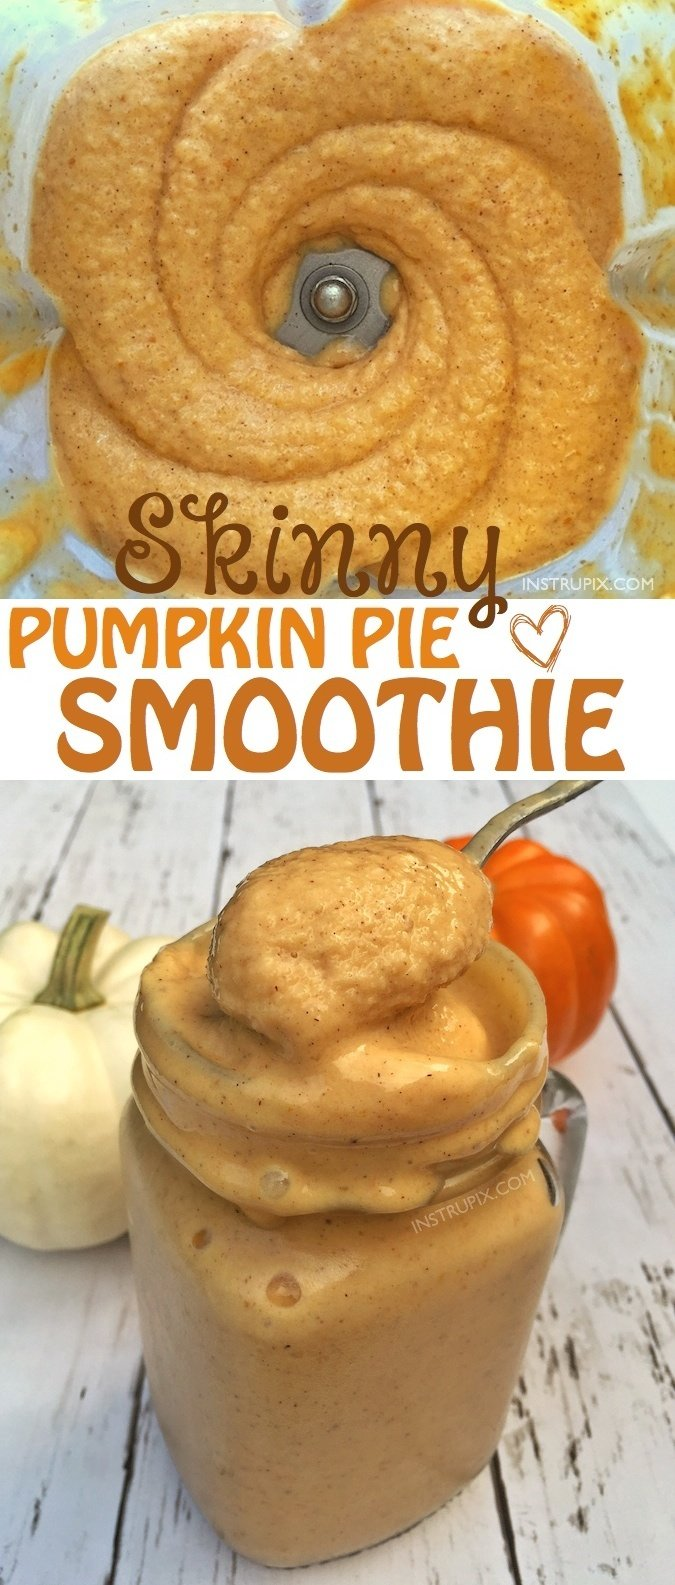 Healthy Pumpkin Pie Smoothie Recipe -- low calorie and super thick and delicious! The perfect Fall treat without all of the guilt! Instrupix.com